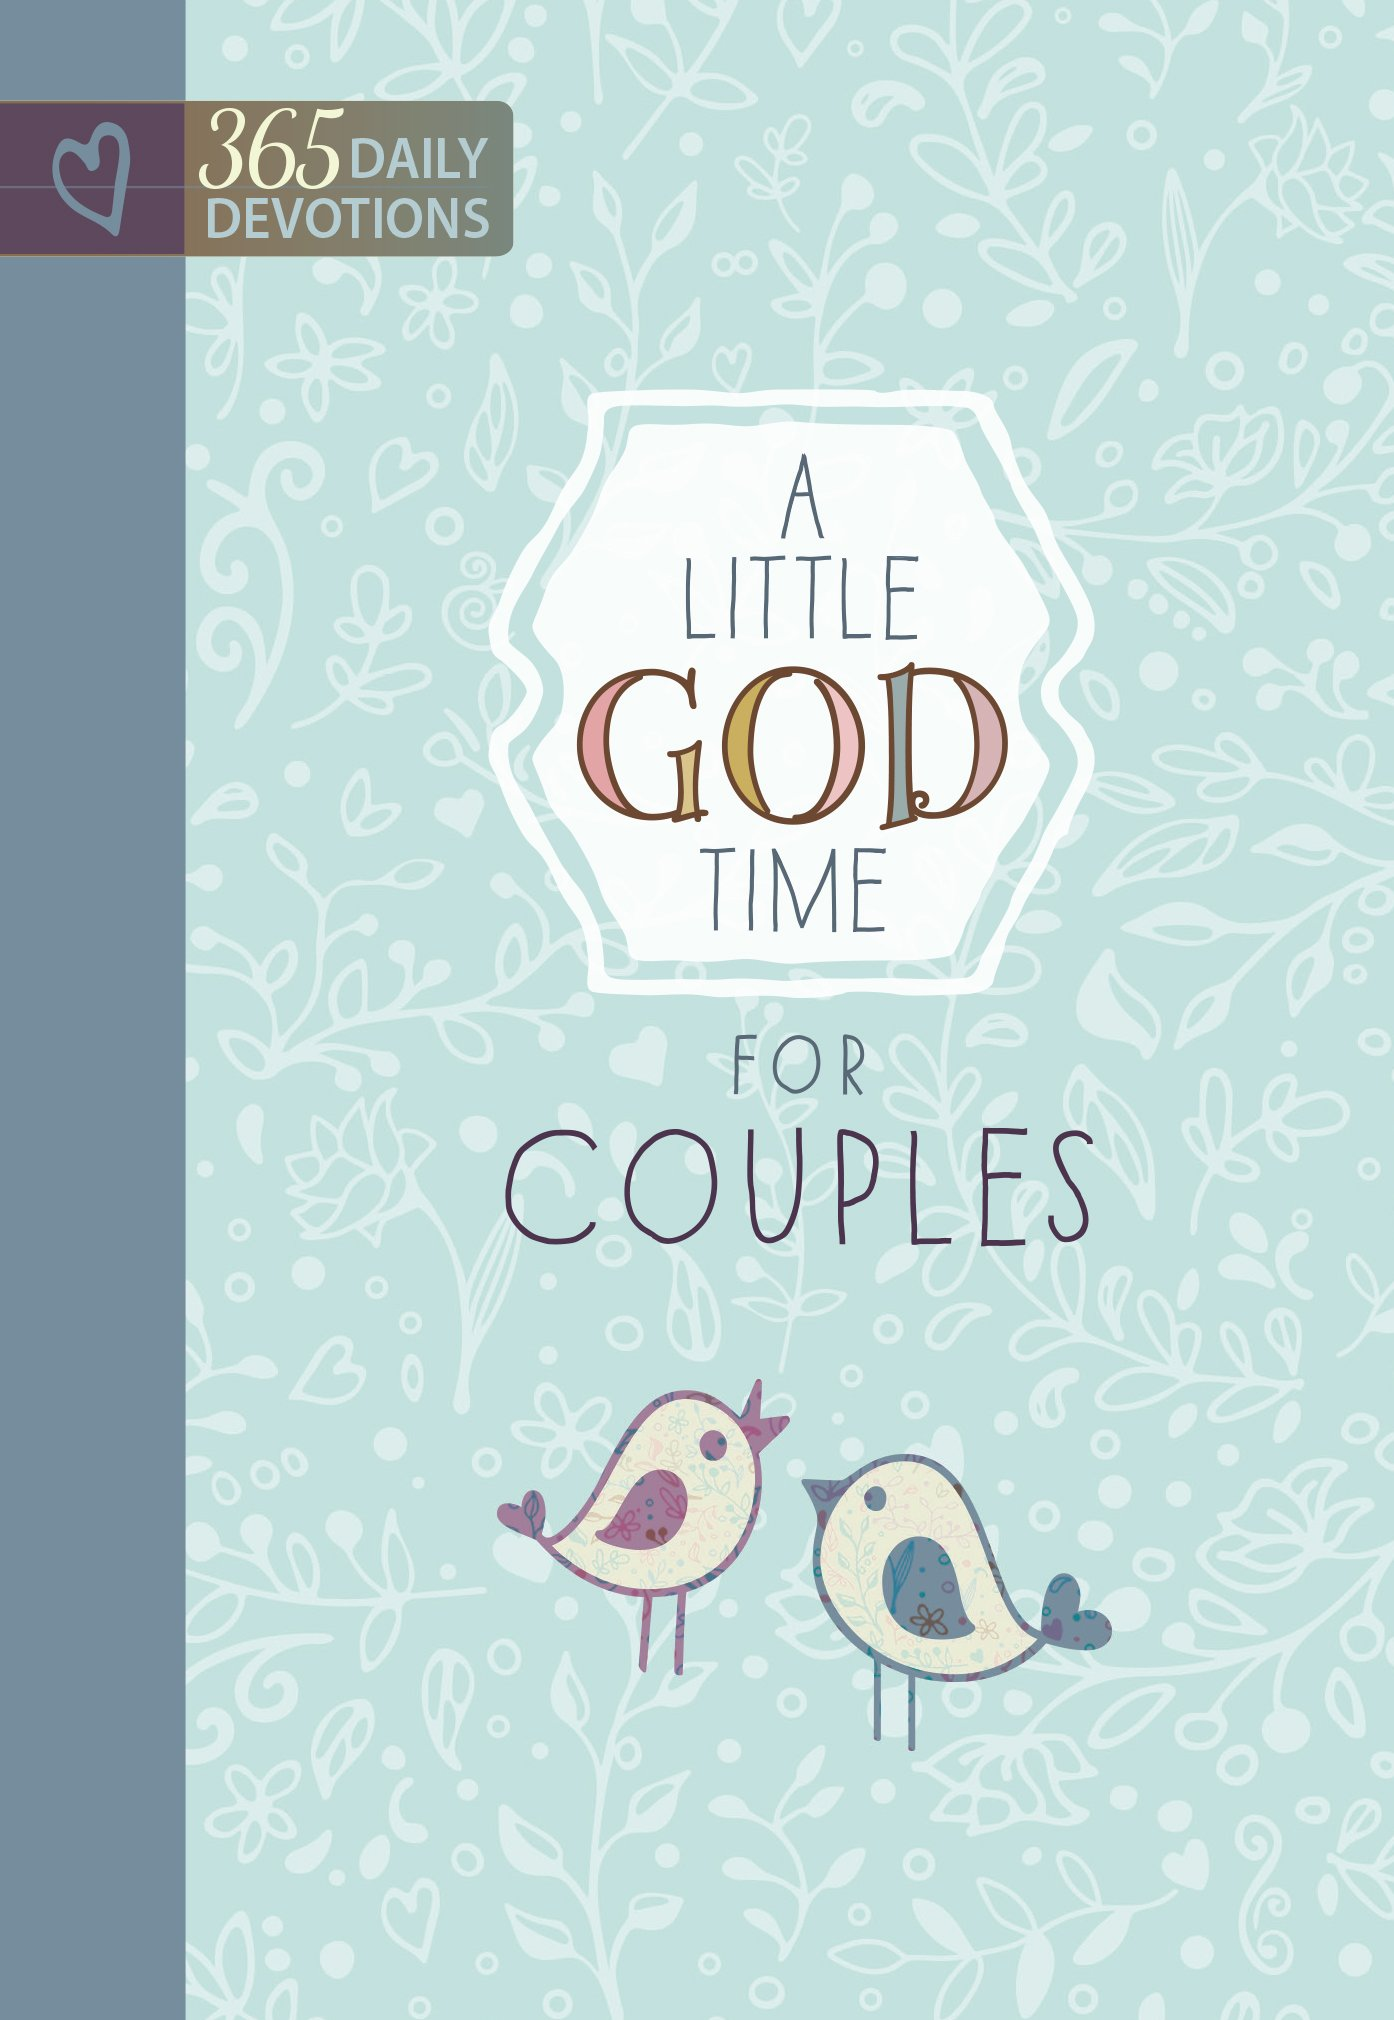 Devotions dating couples free